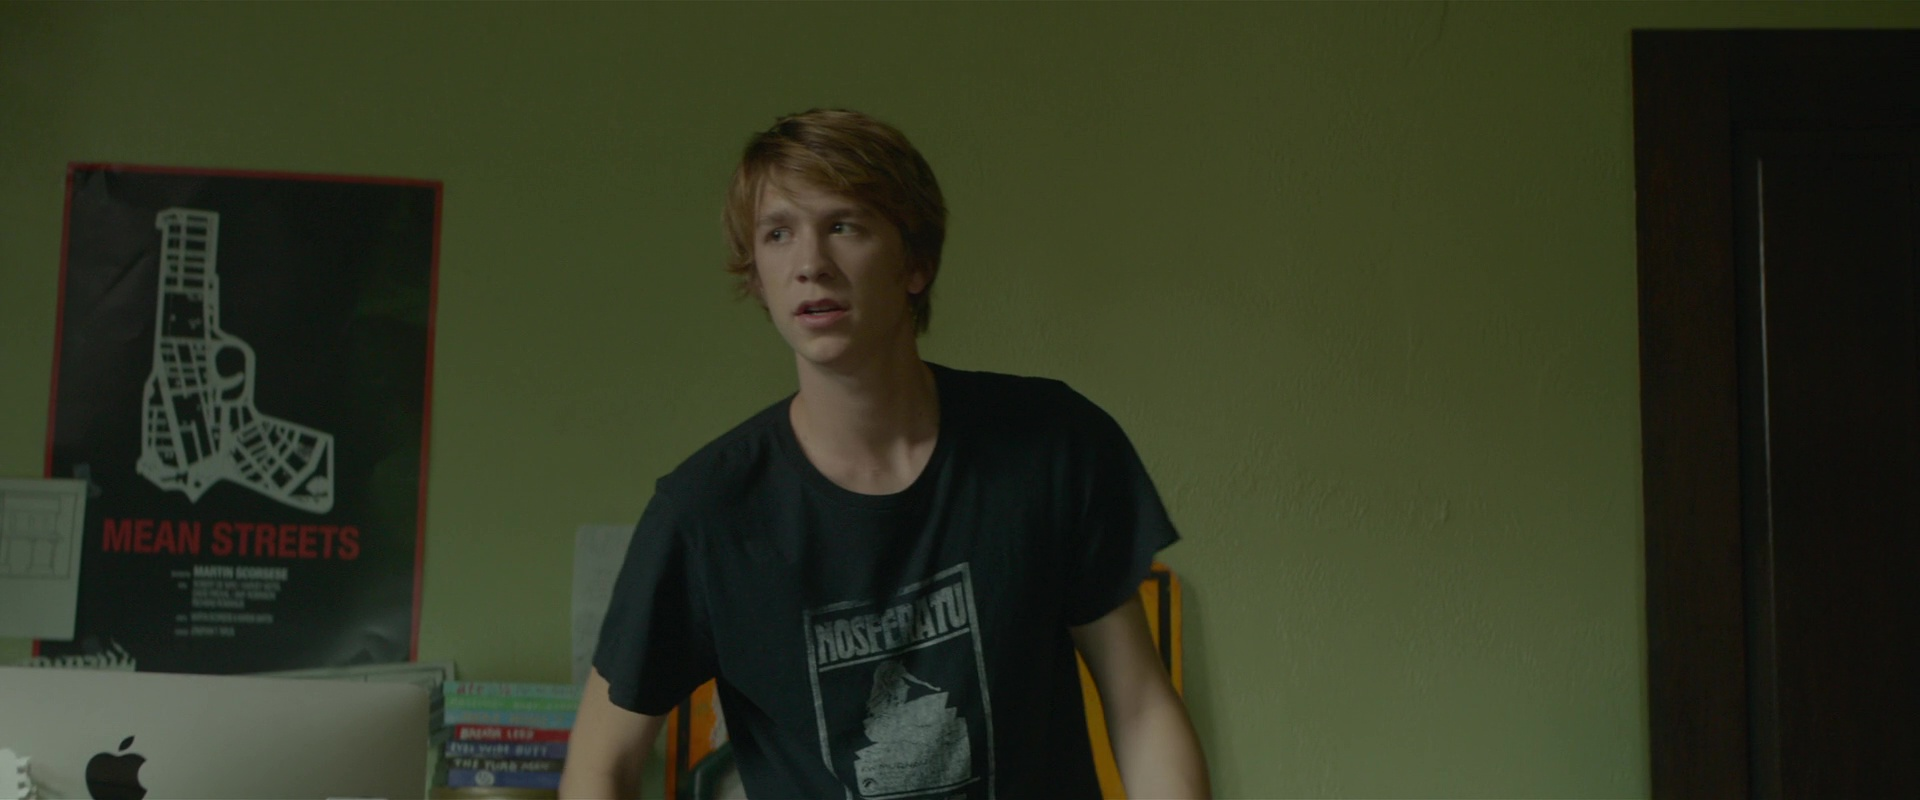 Me and Earl and the Dying Girl film still 4